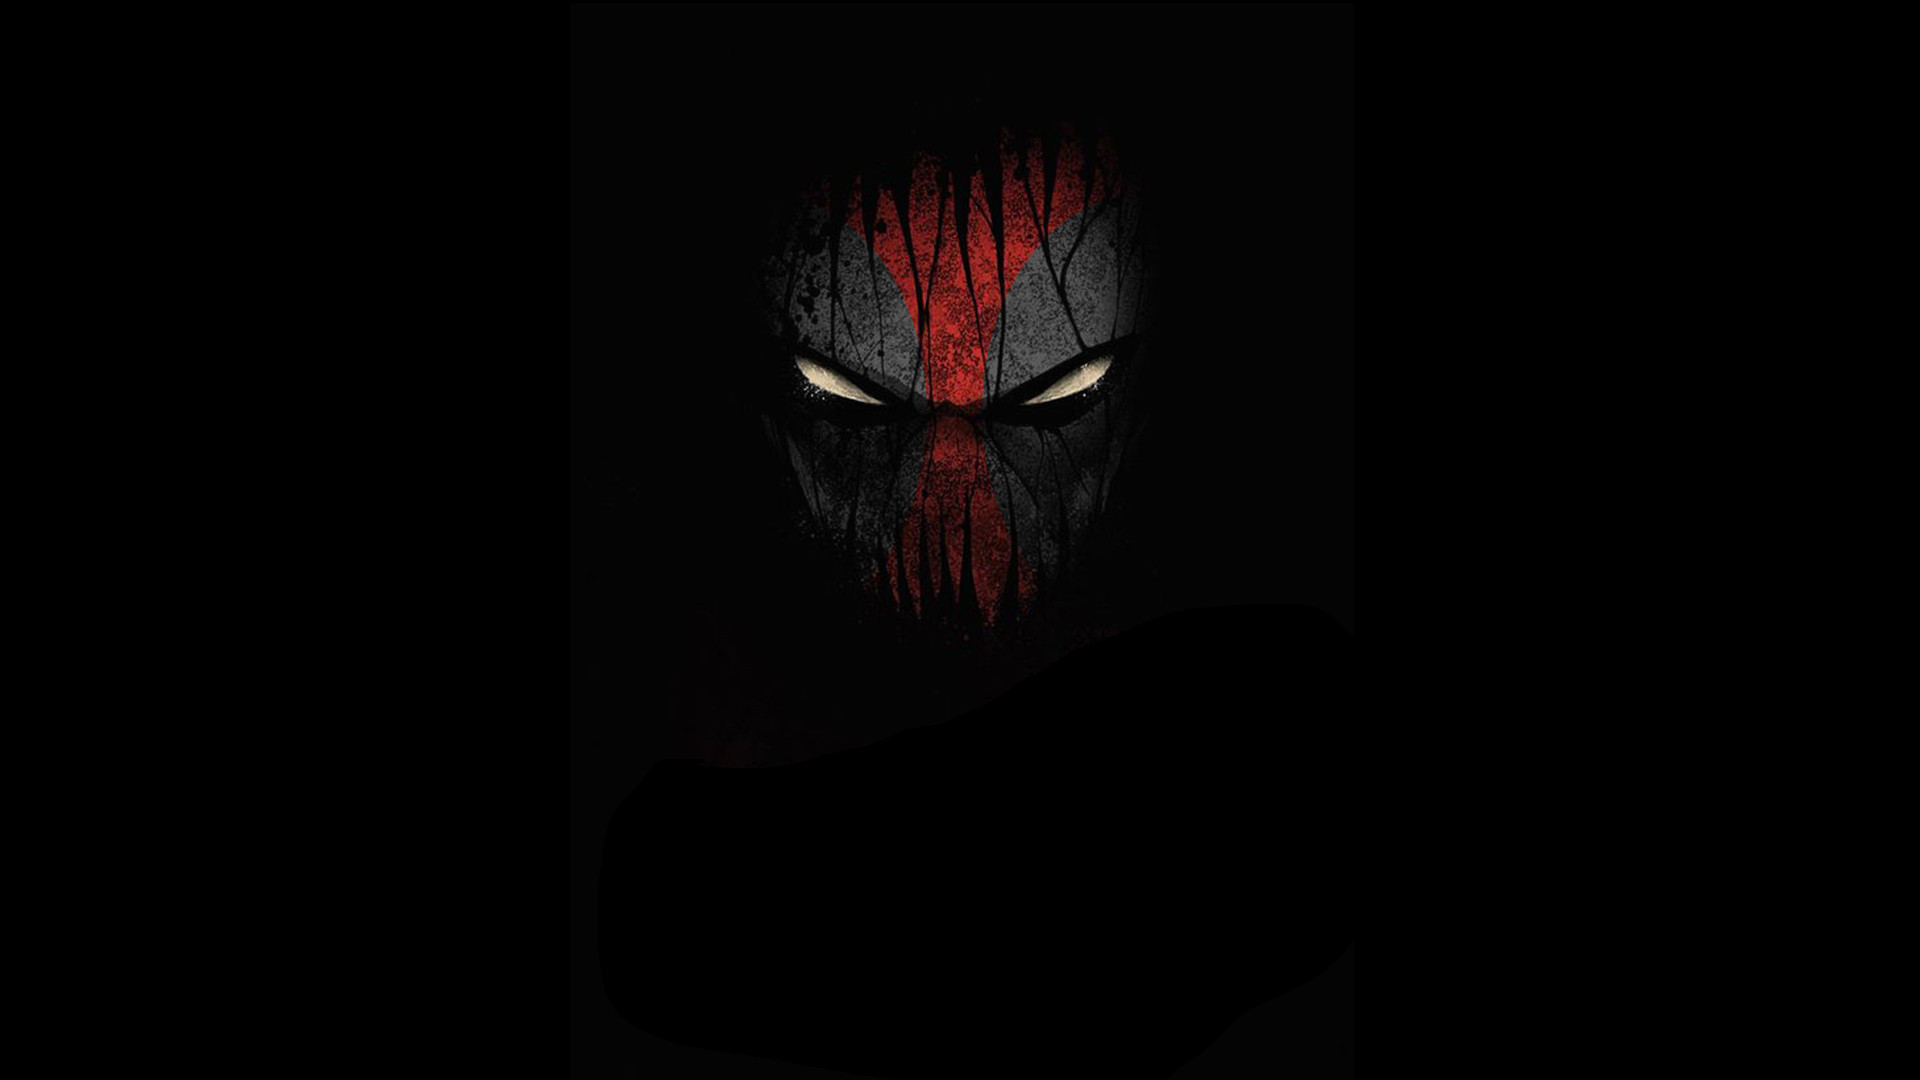 1920x1080 ... Attachment file of Deadpool in the dark for wallpaper ...